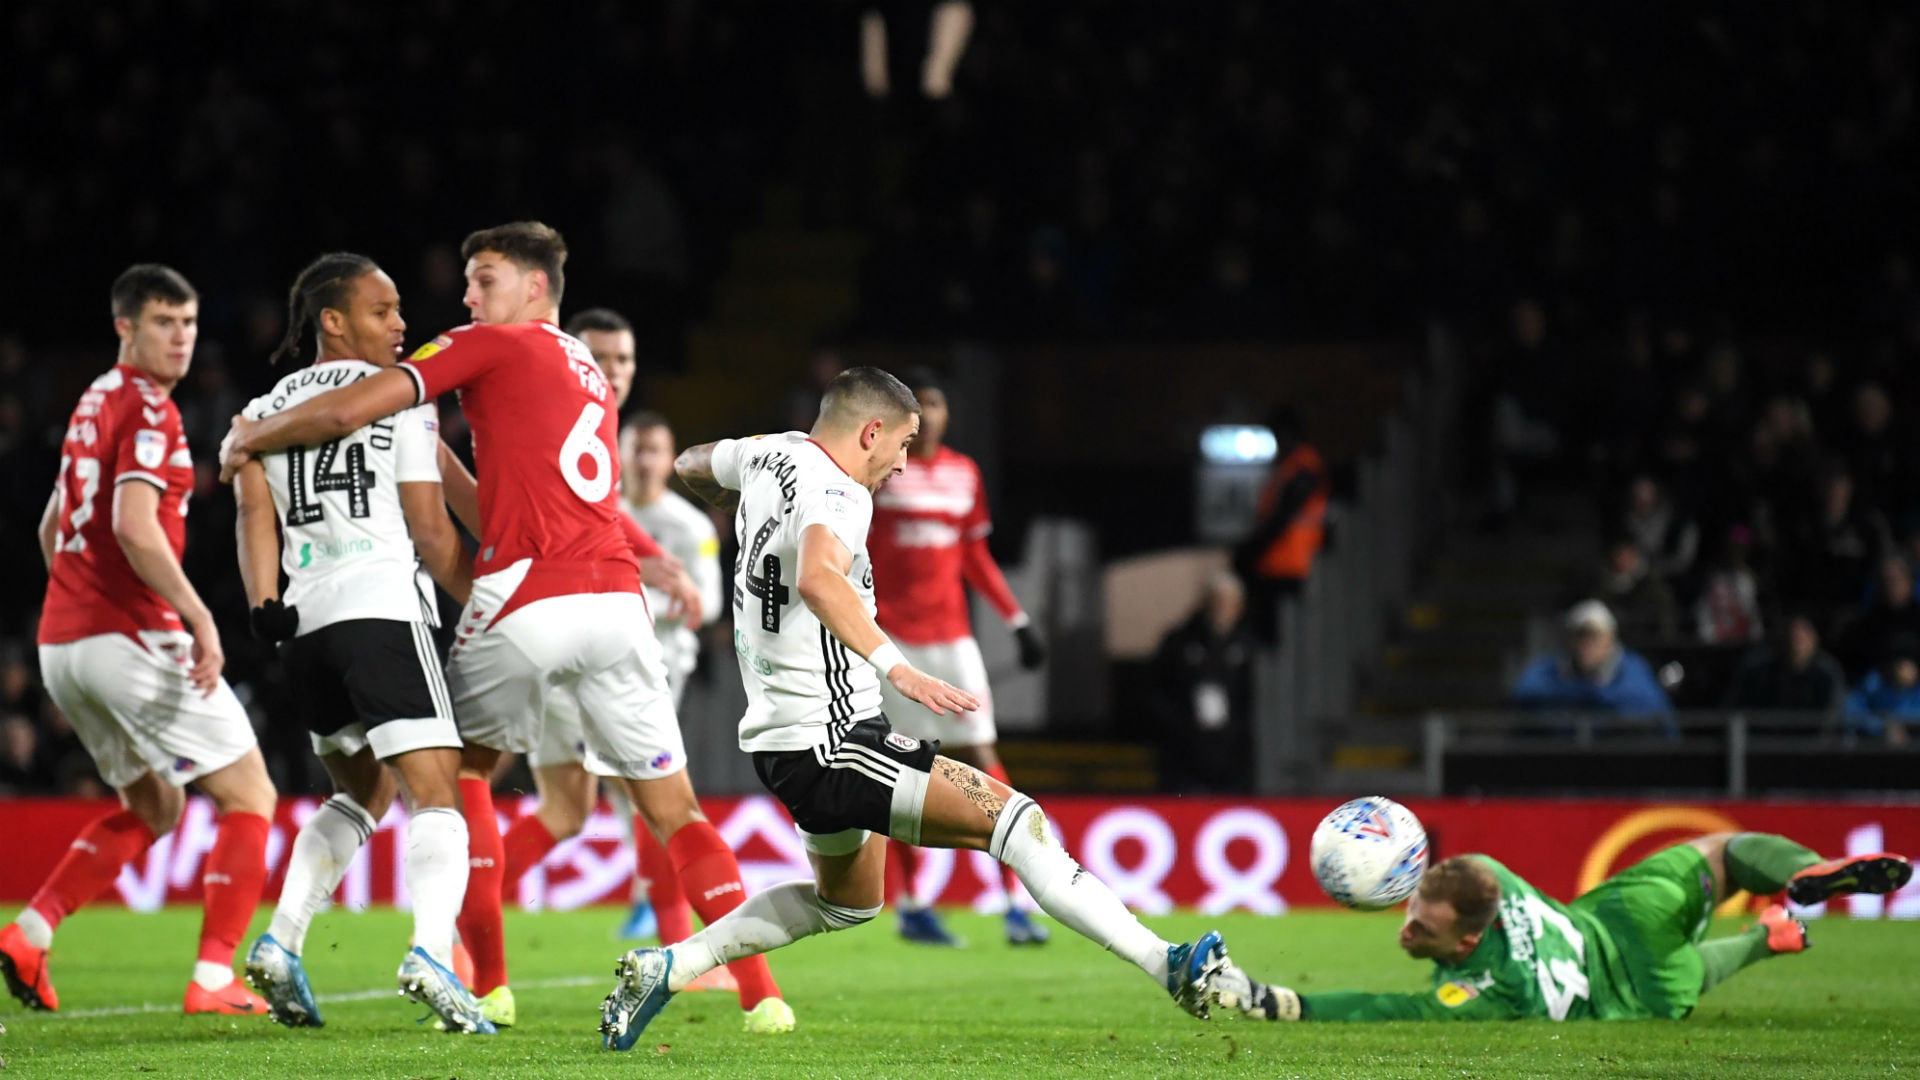 Fulham 1-0 Middlesbrough: Early Knockaert effort lifts Cottagers